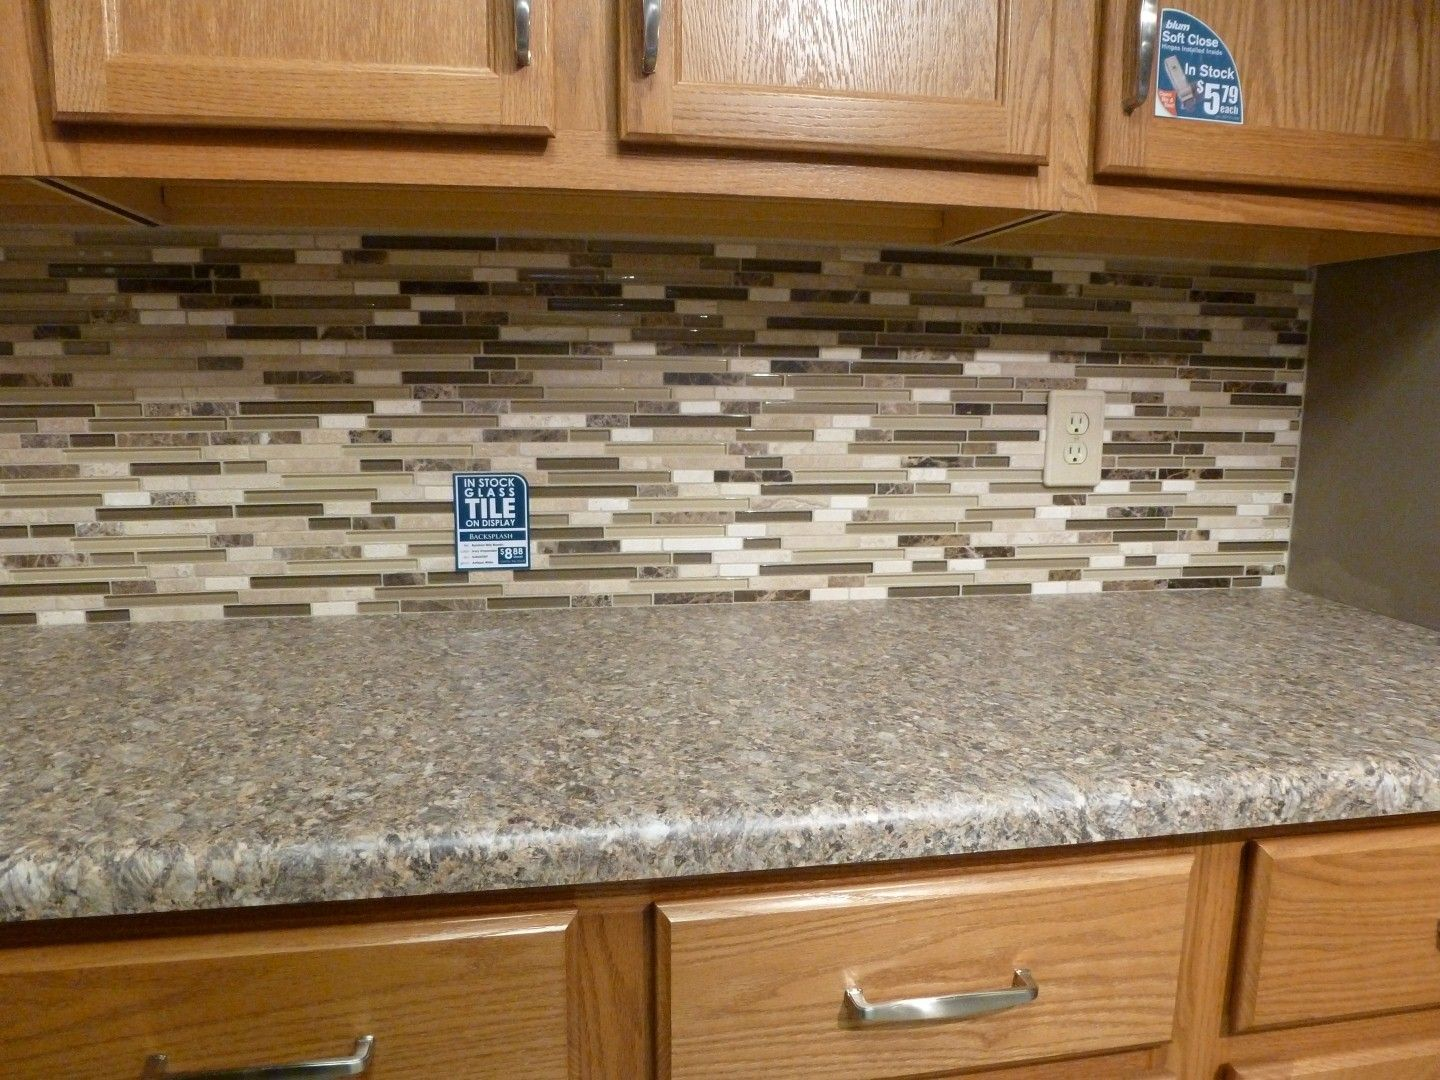 Mosaic kitchen tile backsplash ideas 2565 for Best kitchen backsplash tile ideas